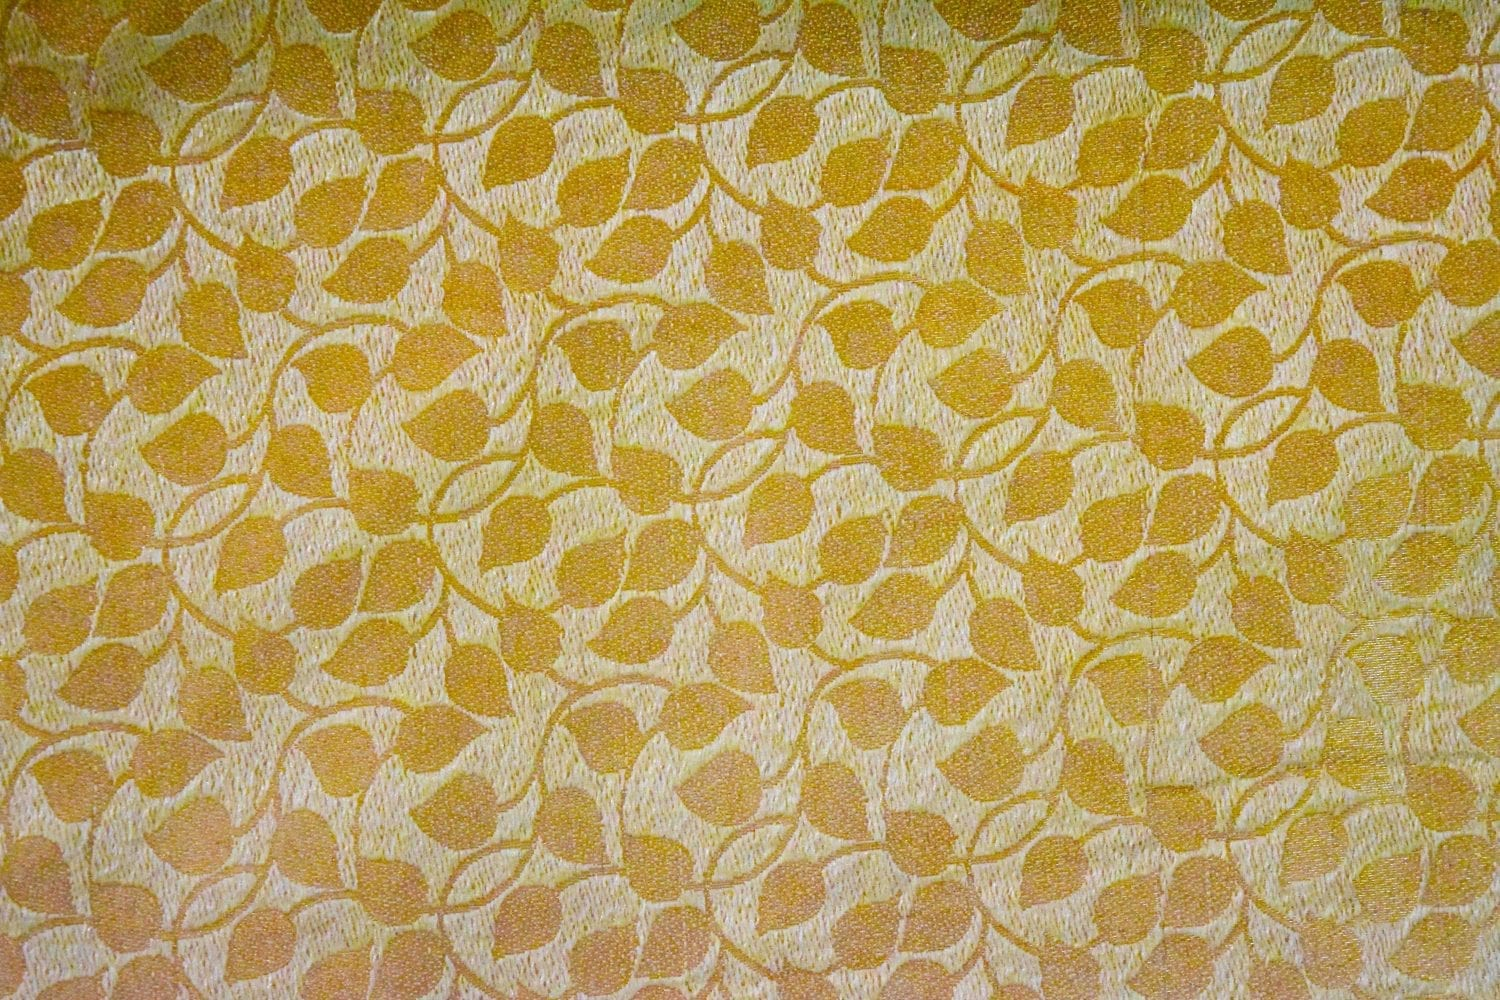 Golden Brocade Self Print fabric for multipurpose use BR001 (per meter price) 2